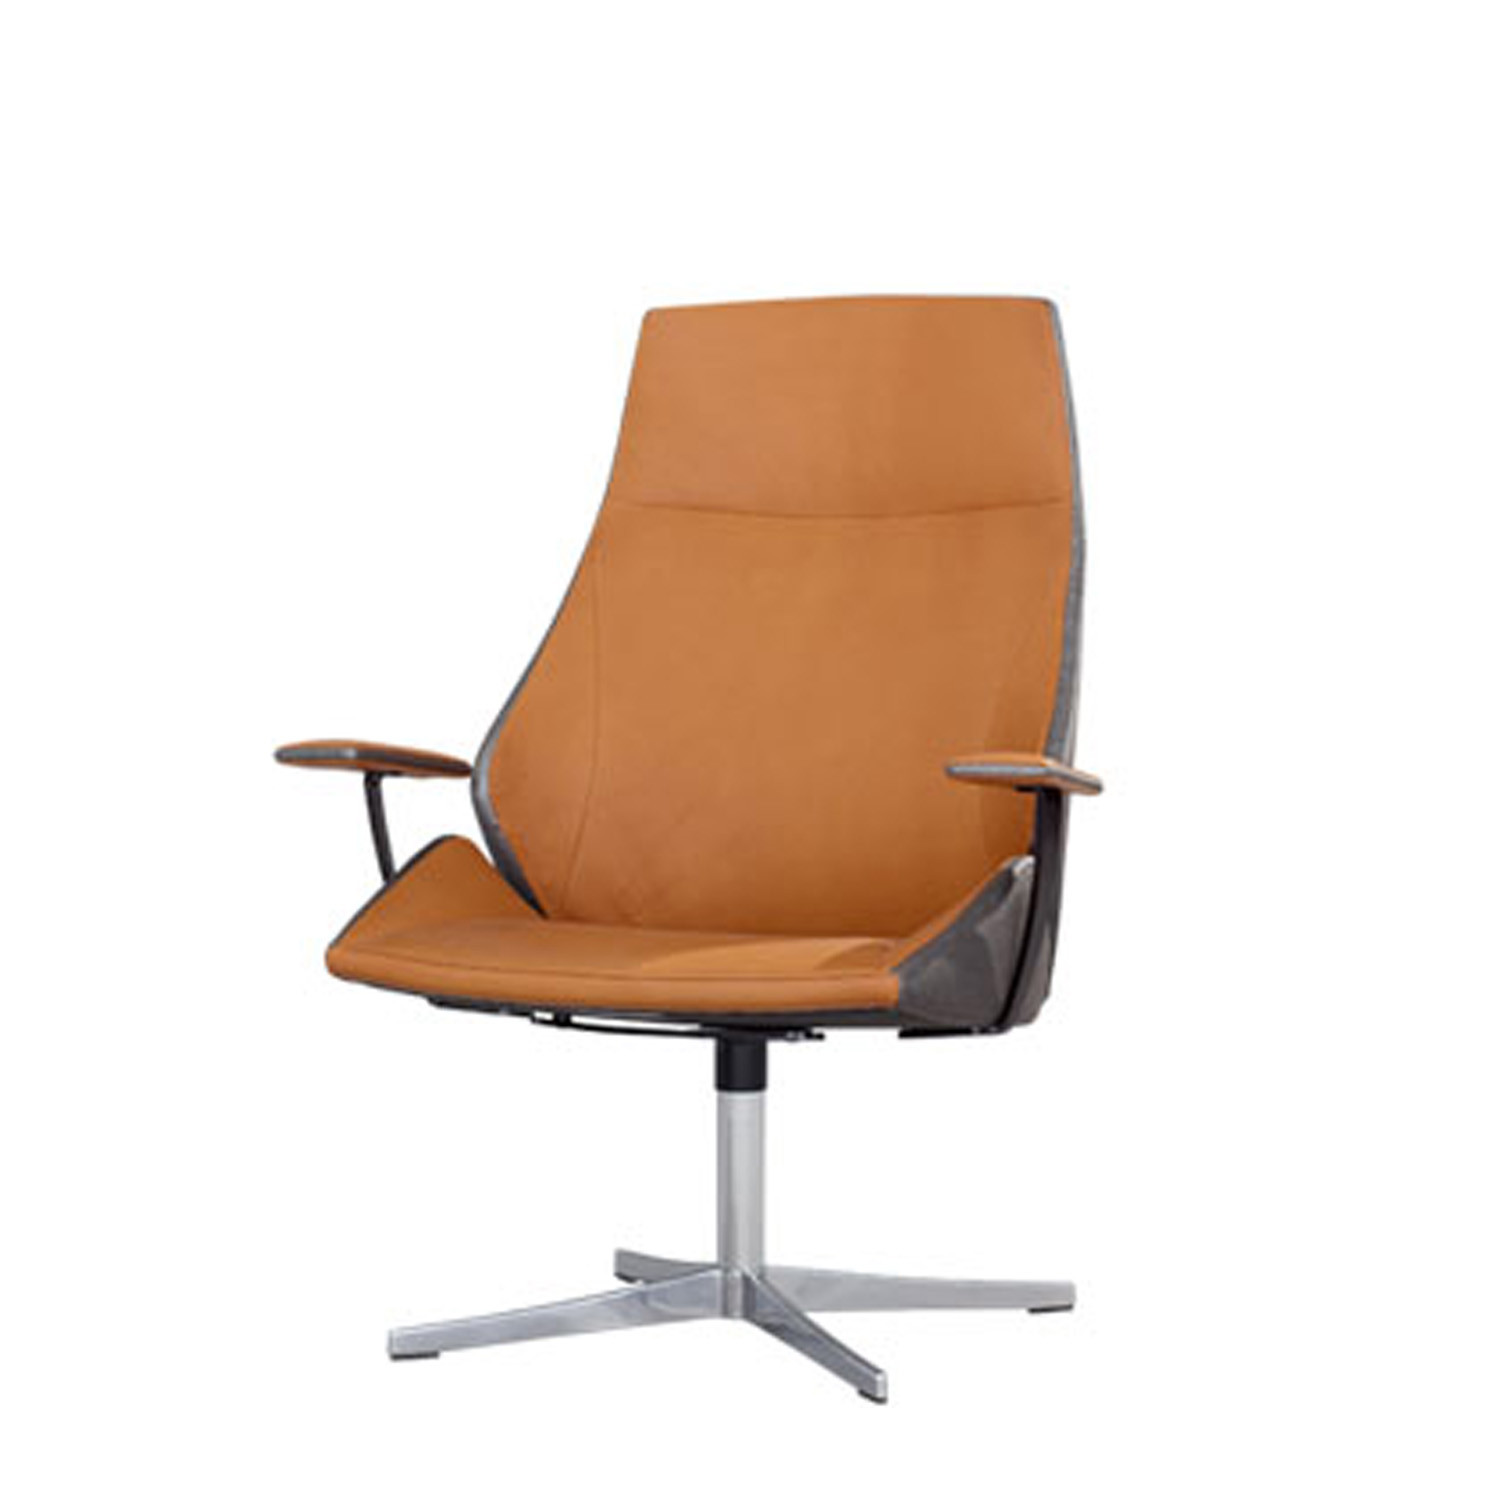 4+ Lounge Swivel Chair